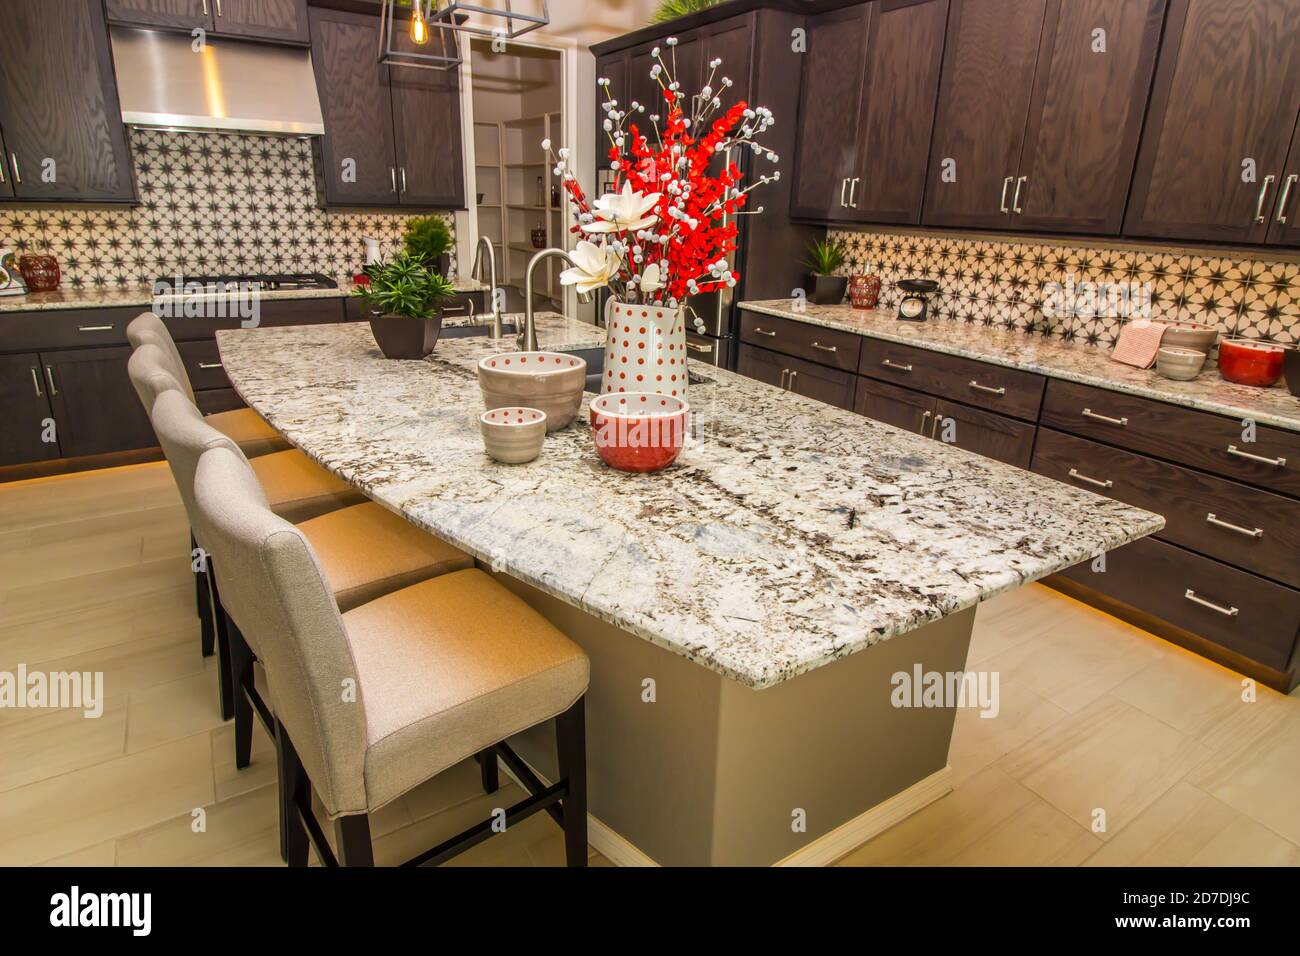 Kitchen Sinks High Resolution Stock Photography And Images Alamy